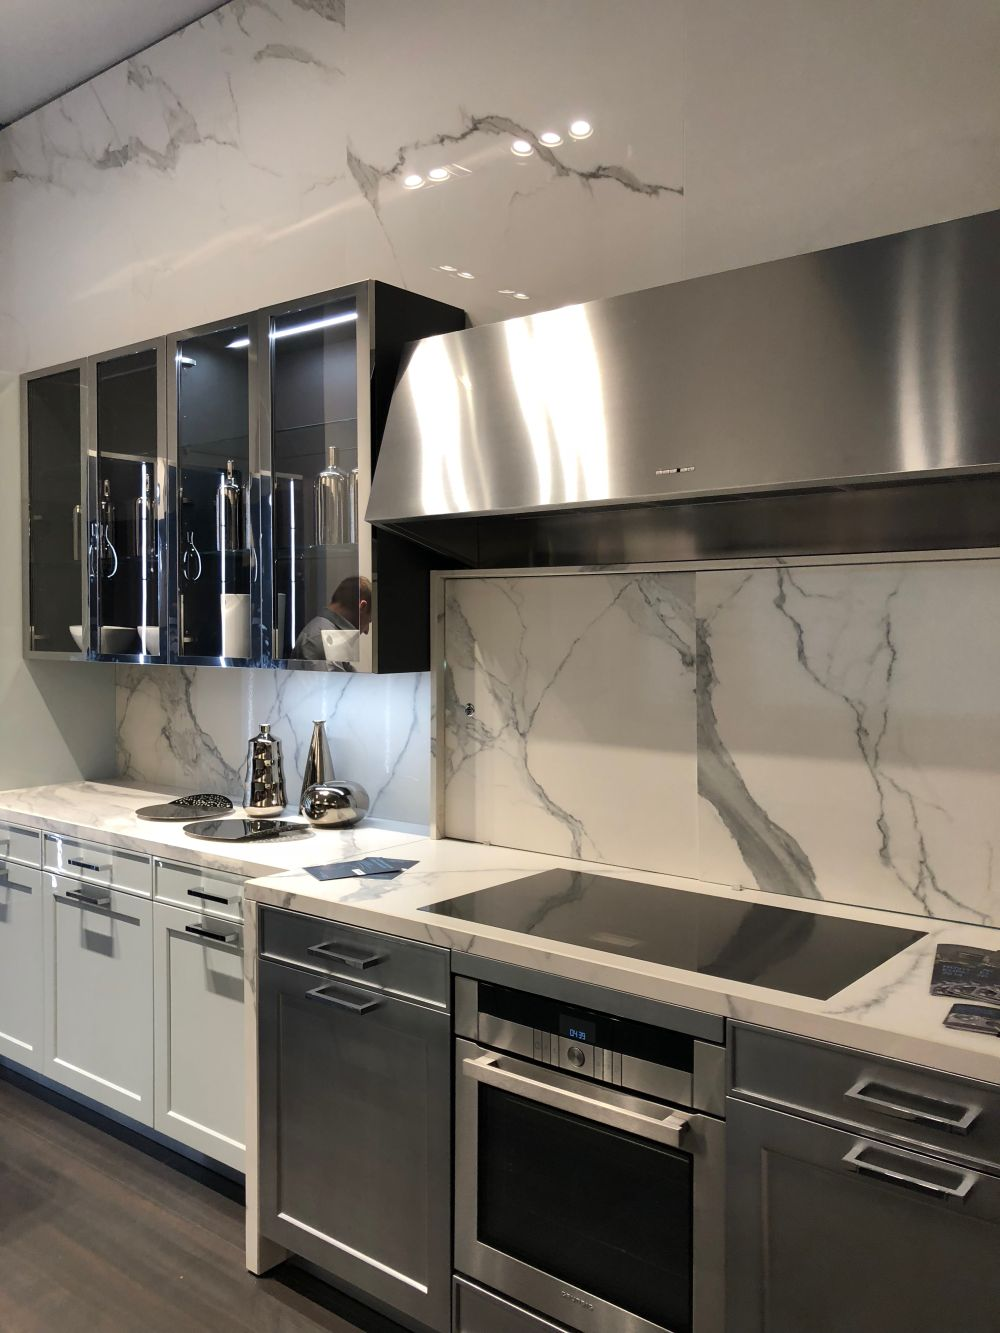 White Carrera Marble Kitchen Countertops The Best Ways To Use Carrara Marble In Interior Design